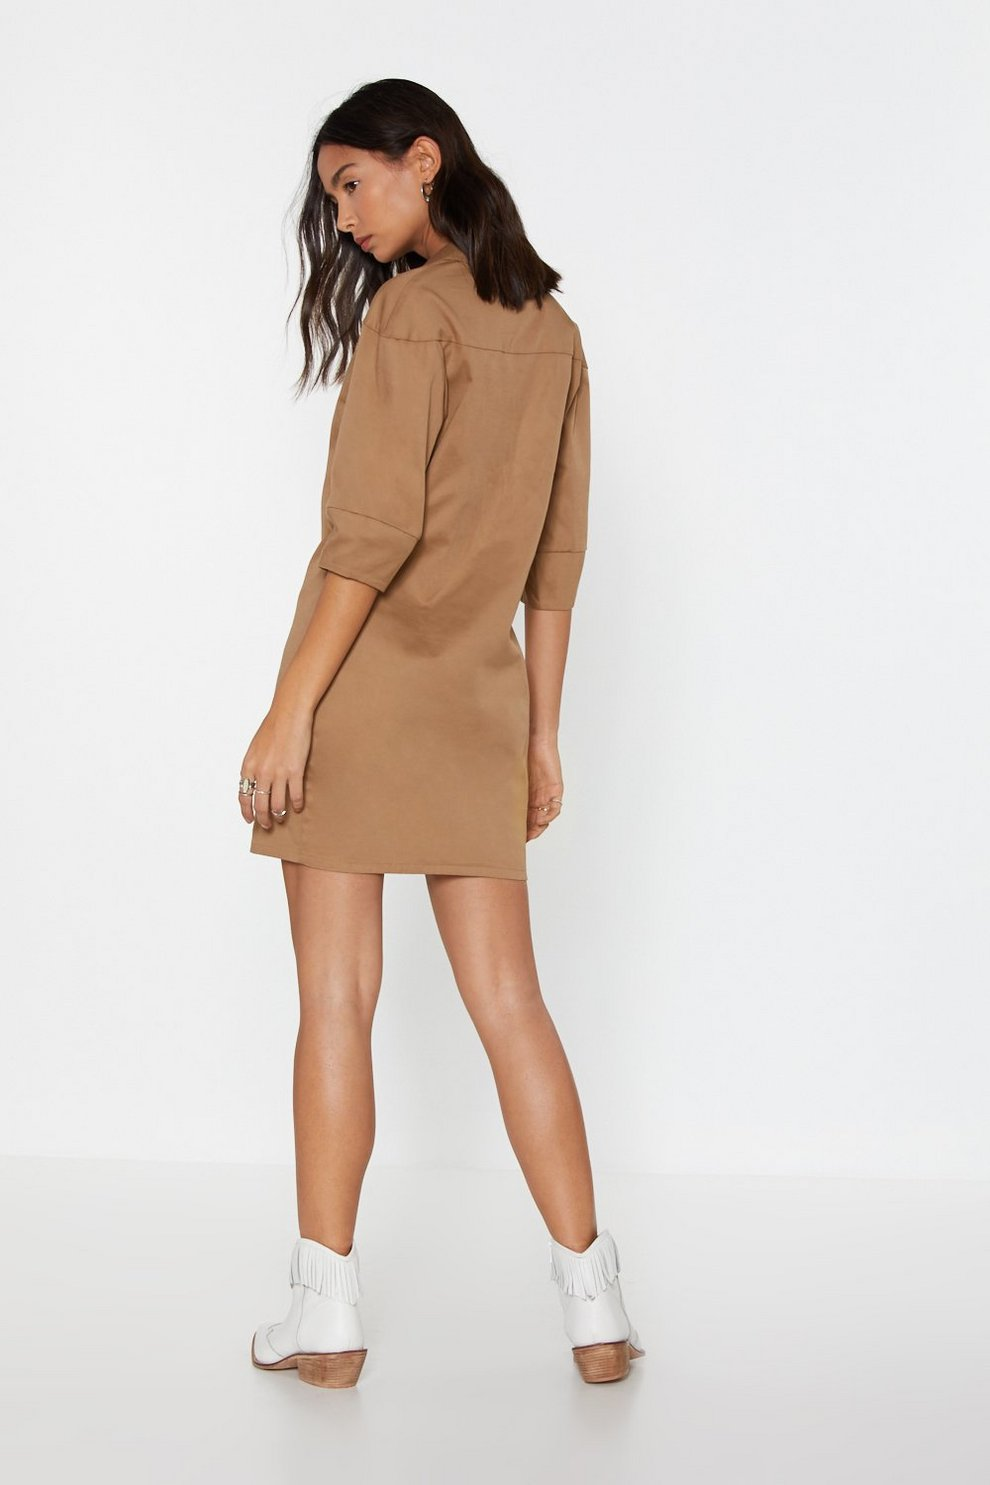 3eac40c1431 The String Theory Lace-Up Shirt Dress